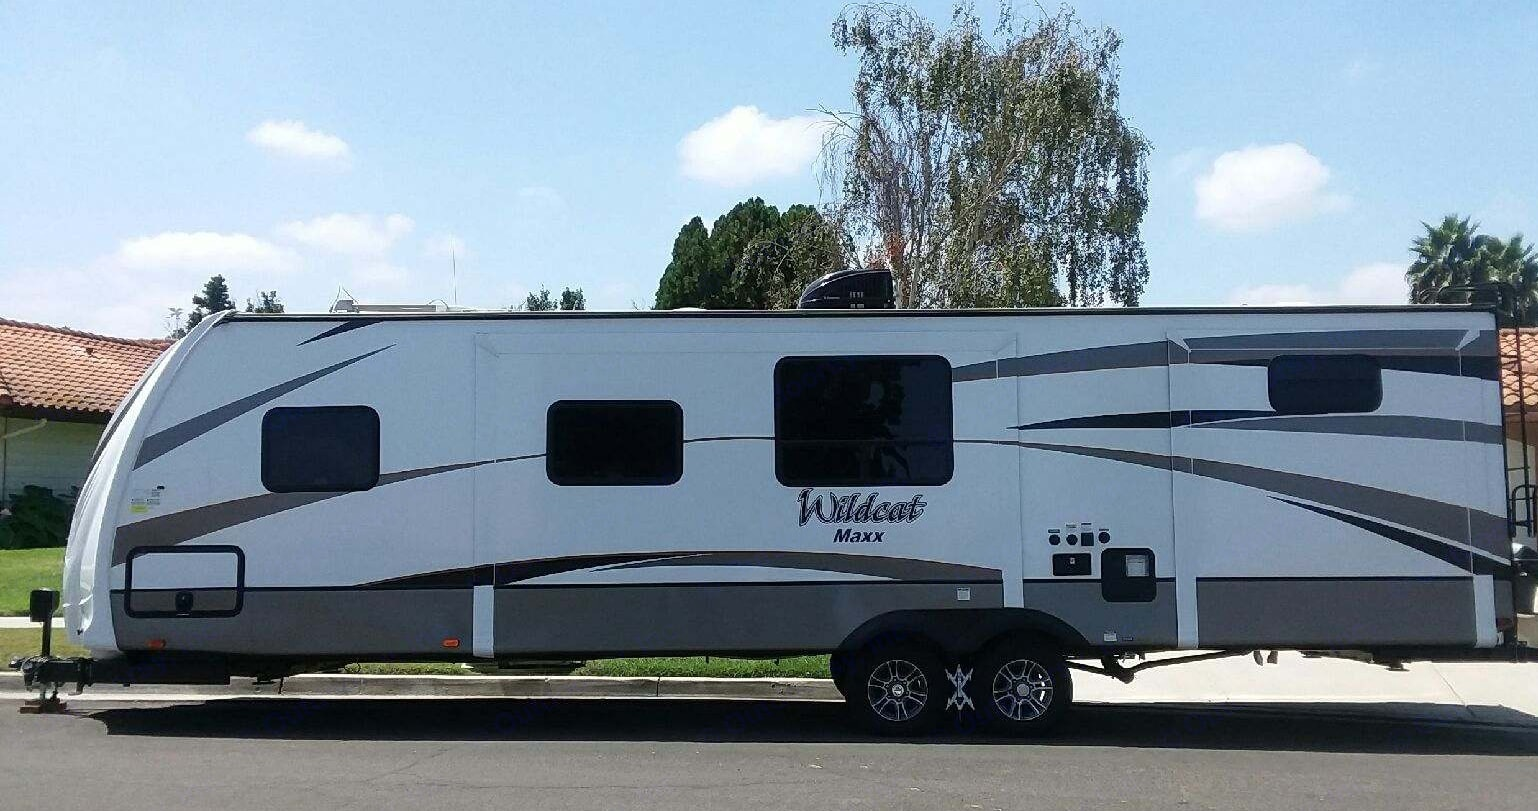 Wildcat Maxx Temporary Trailer during Remodel/Emergency Disaster- DELIVERED FULLY STOCKED. Temporary Long Term Housing / Remodel / Disaster Relief Trailers DELIVERED and Fully Stocked 2018